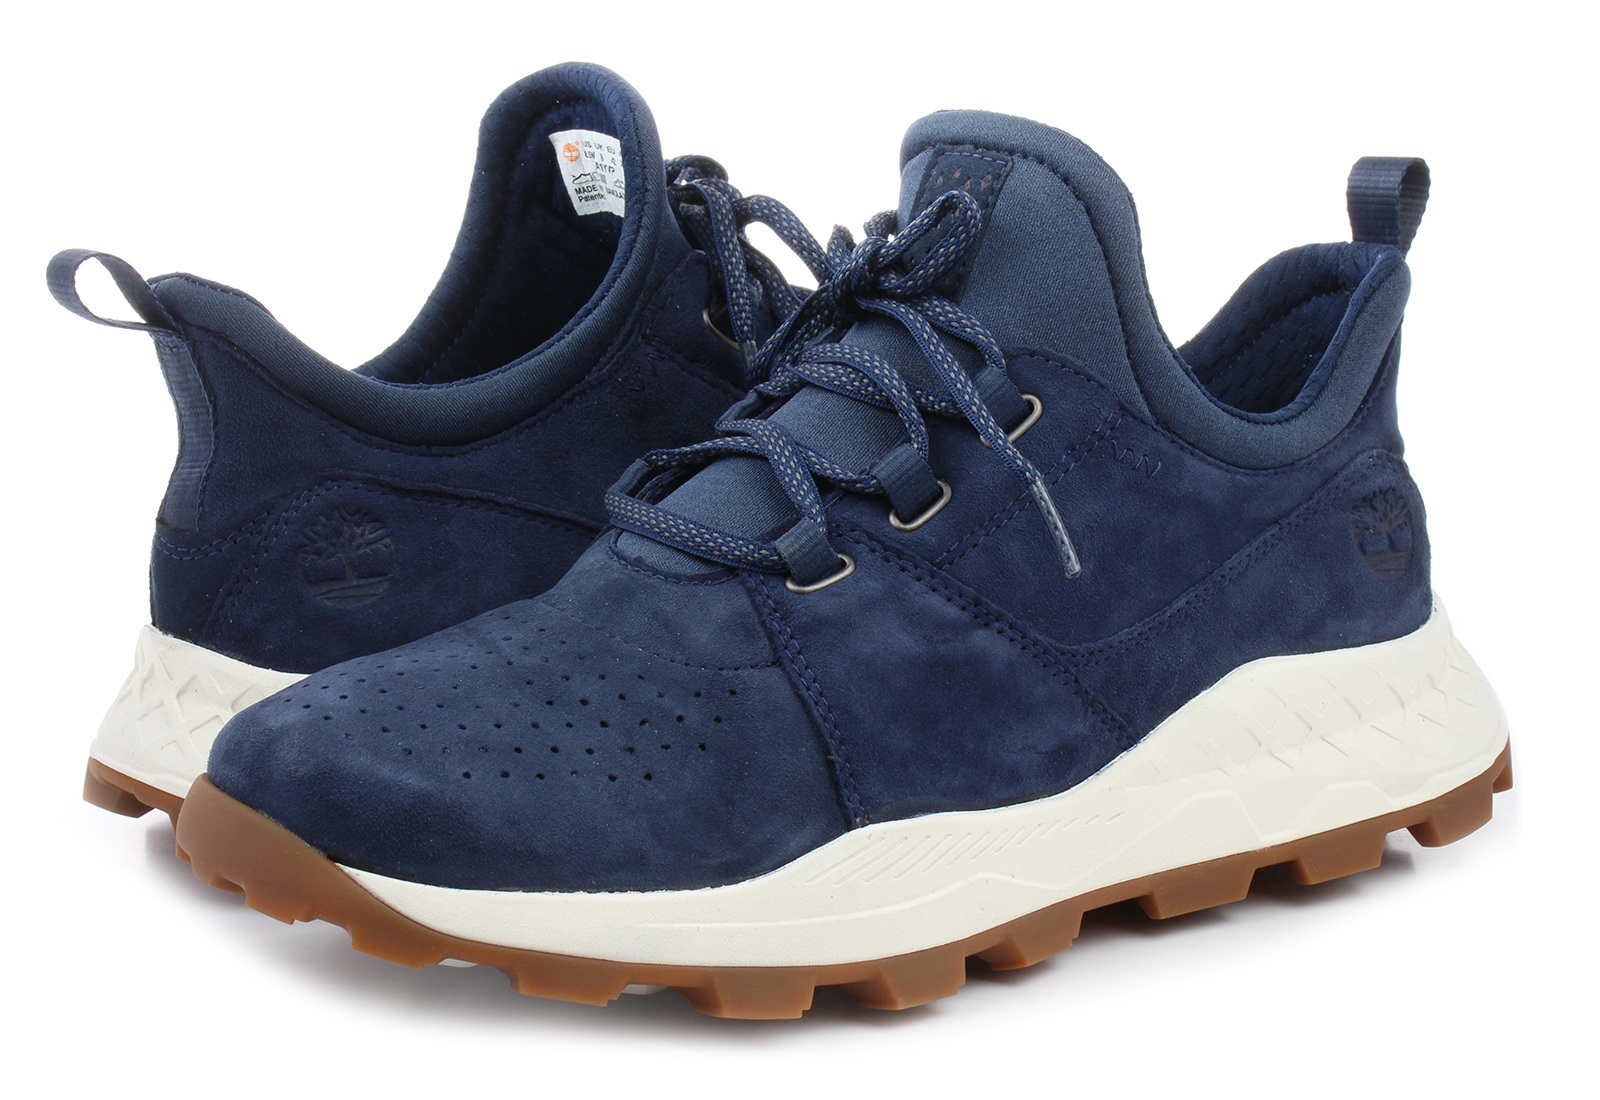 Timberland Shoes Brooklyn Ox A1yvp Nvy Online Shop